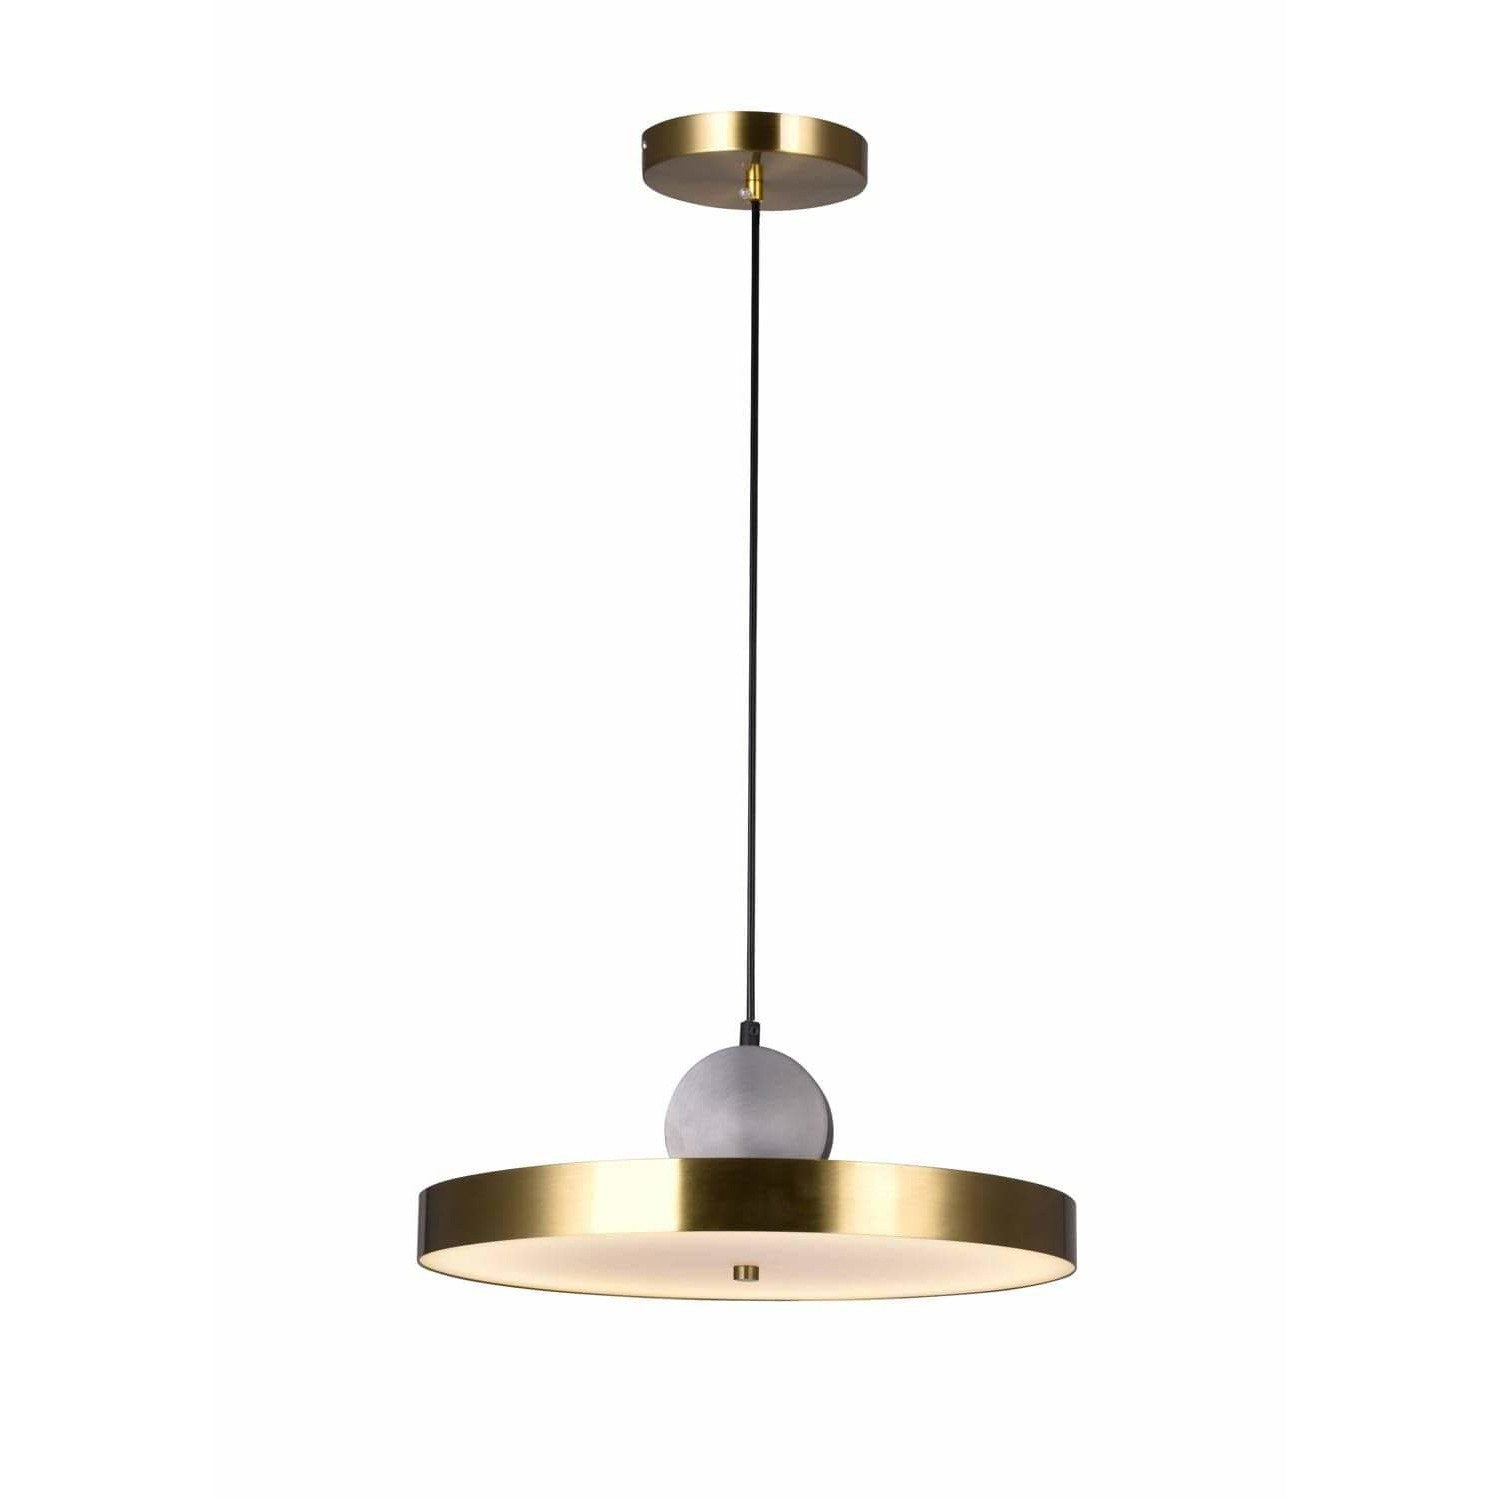 CWI Lighting Pendants Brass+Black Saleen LED Pendant with Brass+Black Finish by CWI Lighting 1156P16-625